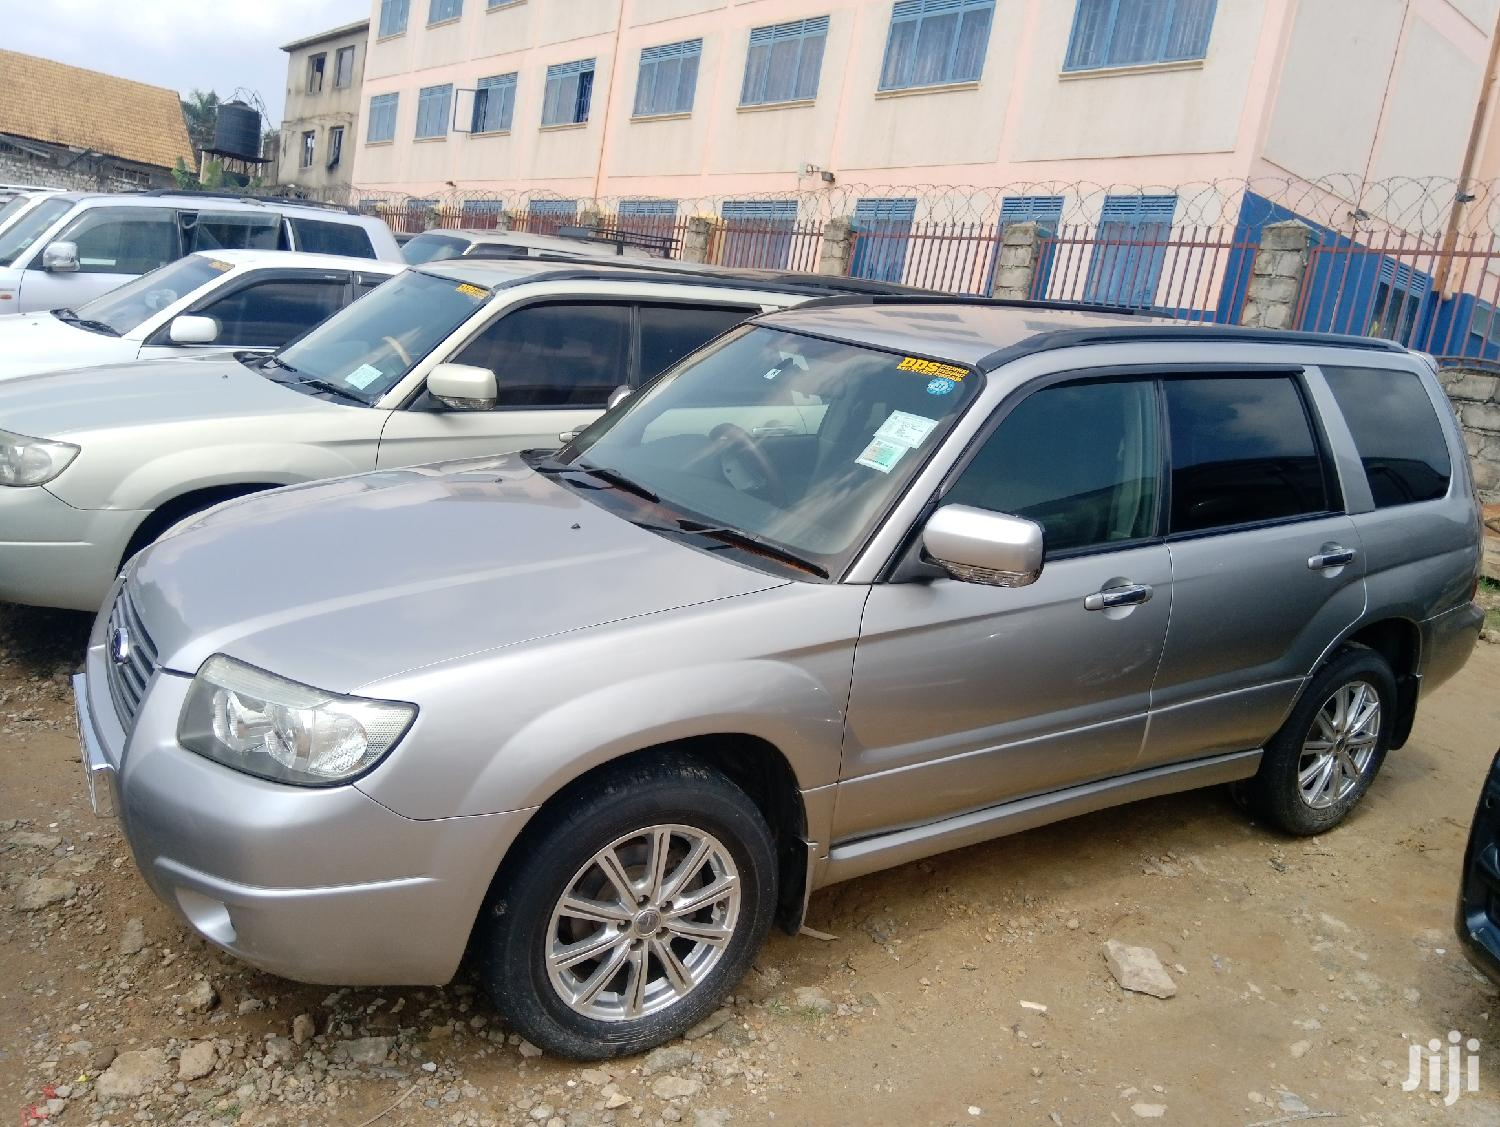 Subaru Forester 2006 Silver | Cars for sale in Kampala, Central Region, Uganda